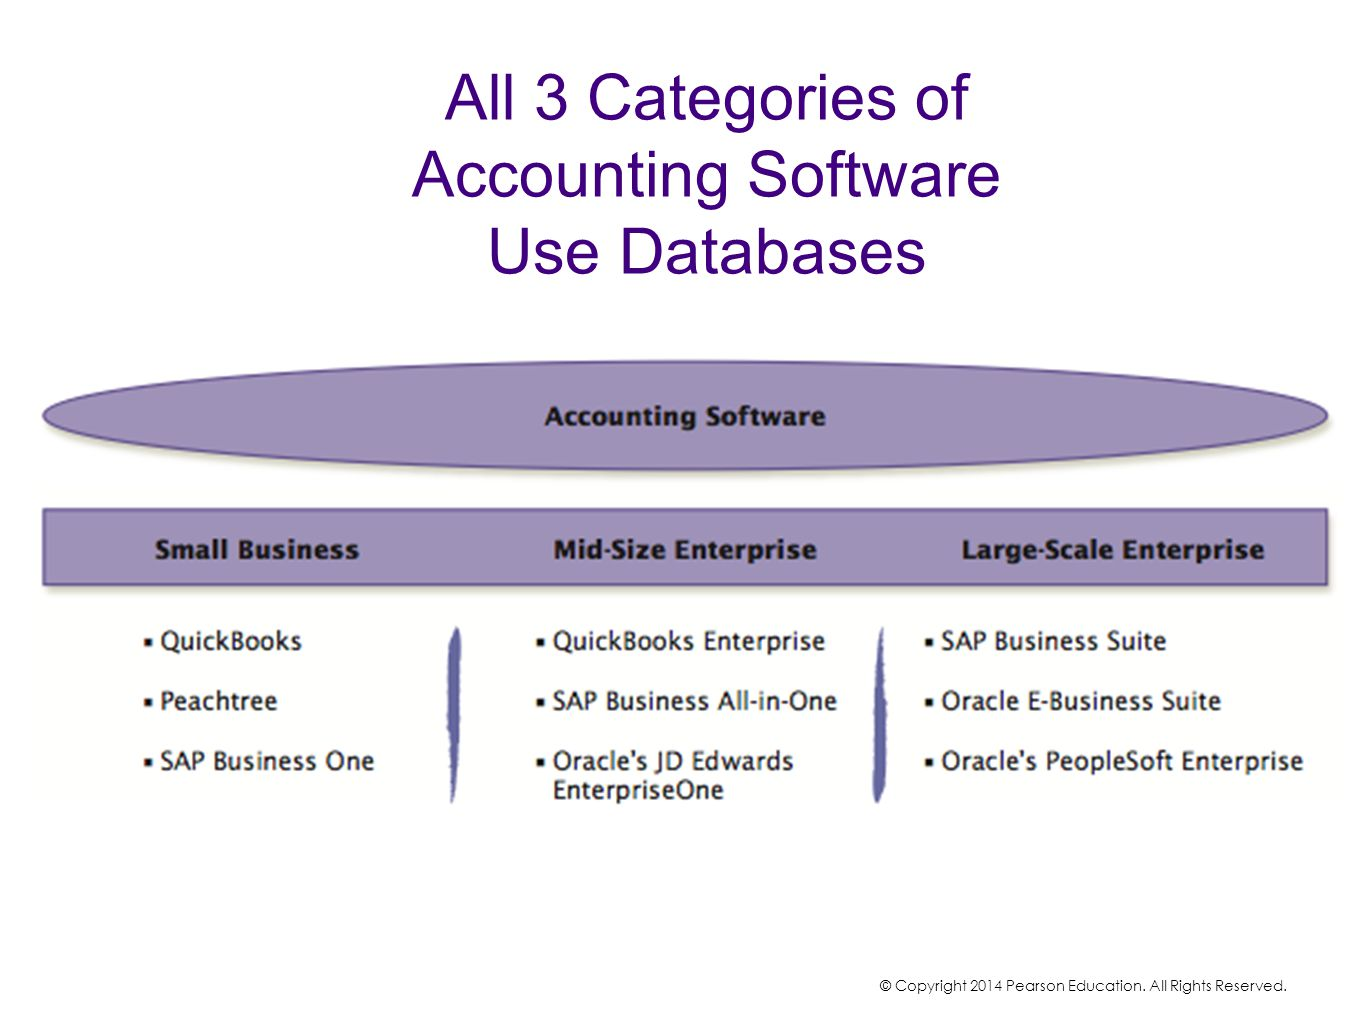 All 3 Categories of Accounting Software Use Databases